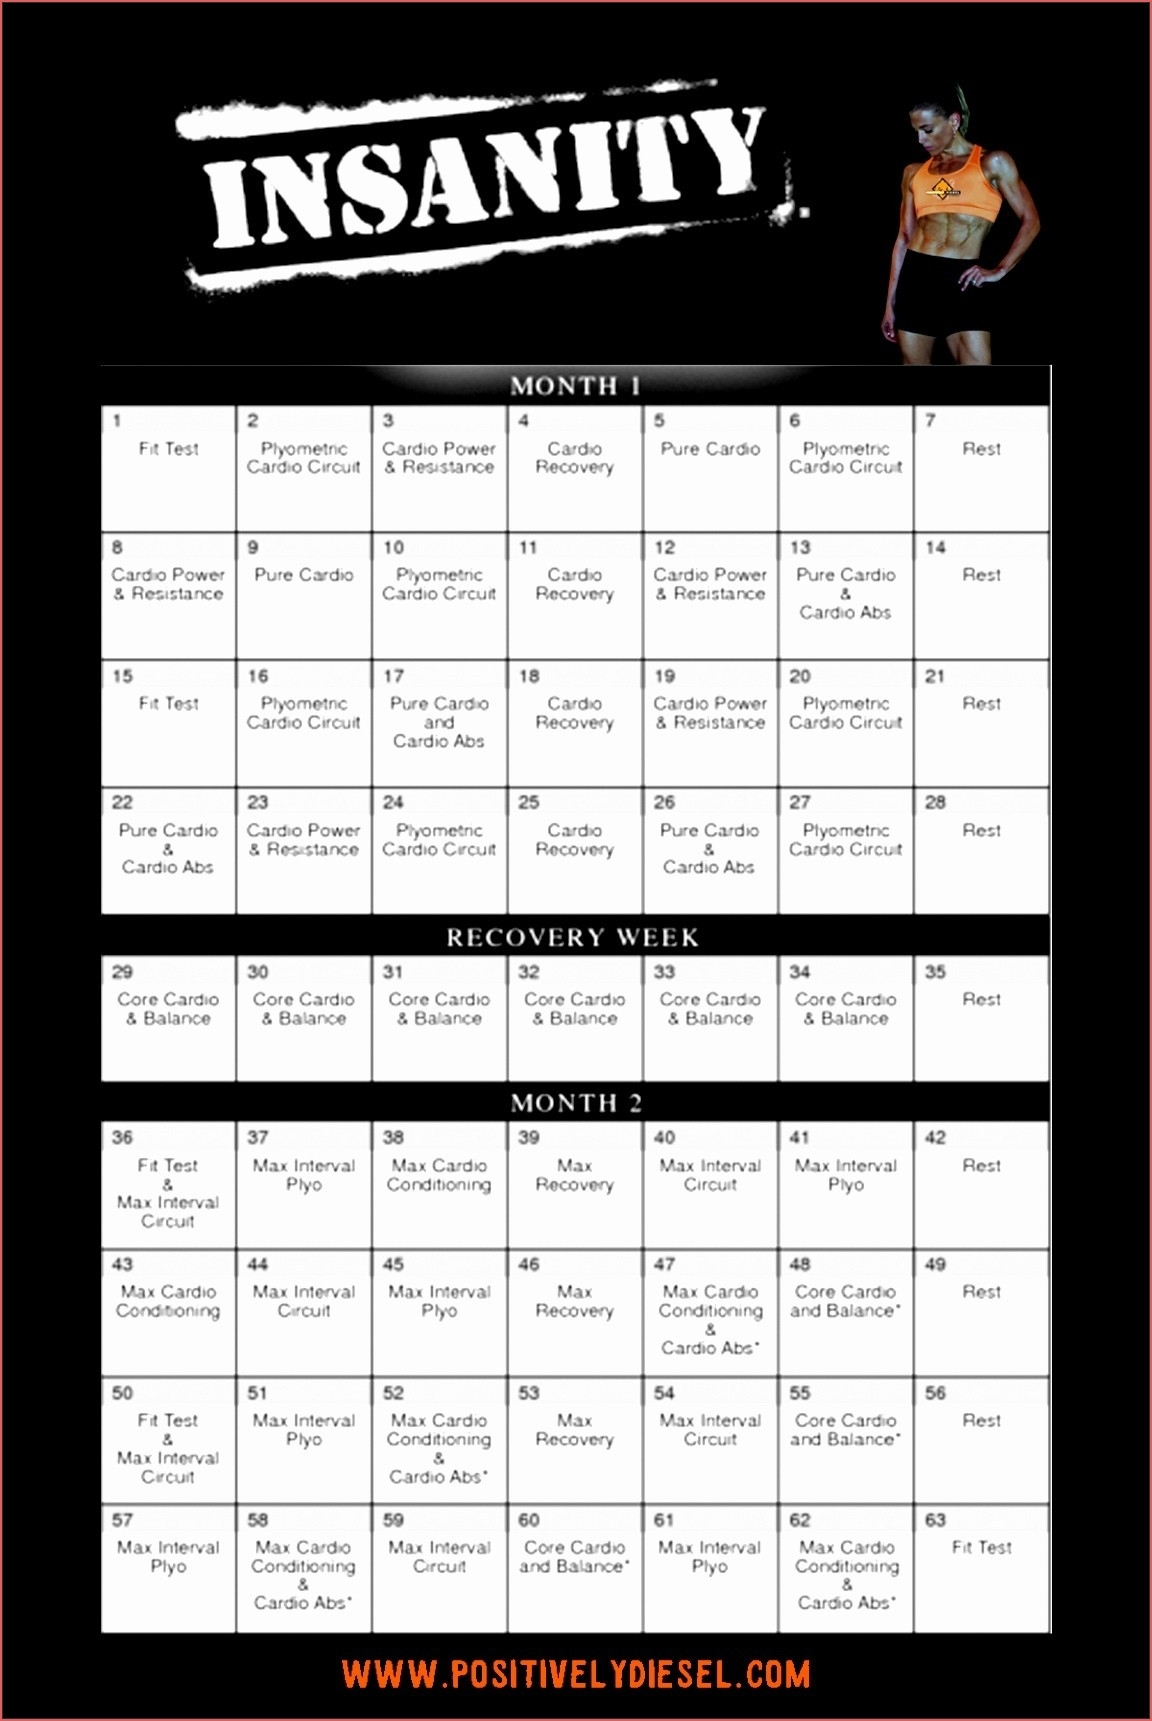 Beachbody Insanity Calendar Online Calendar Templates Printable with regard to The Insanity 60 Day Wall Calendar